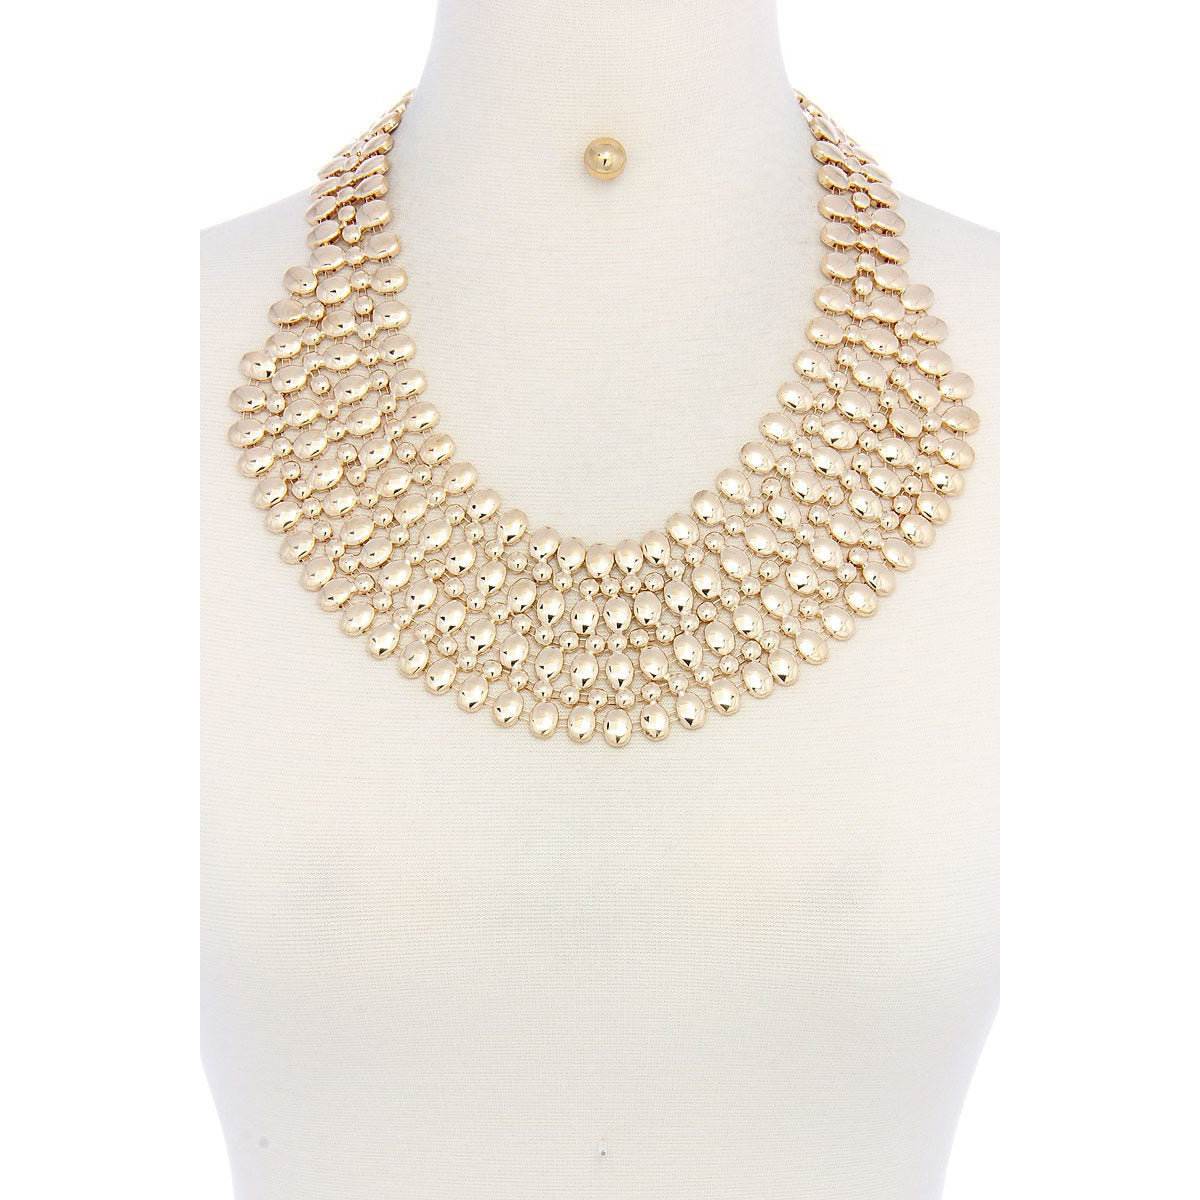 Jada Gold Tone Bead Necklace and Earring set